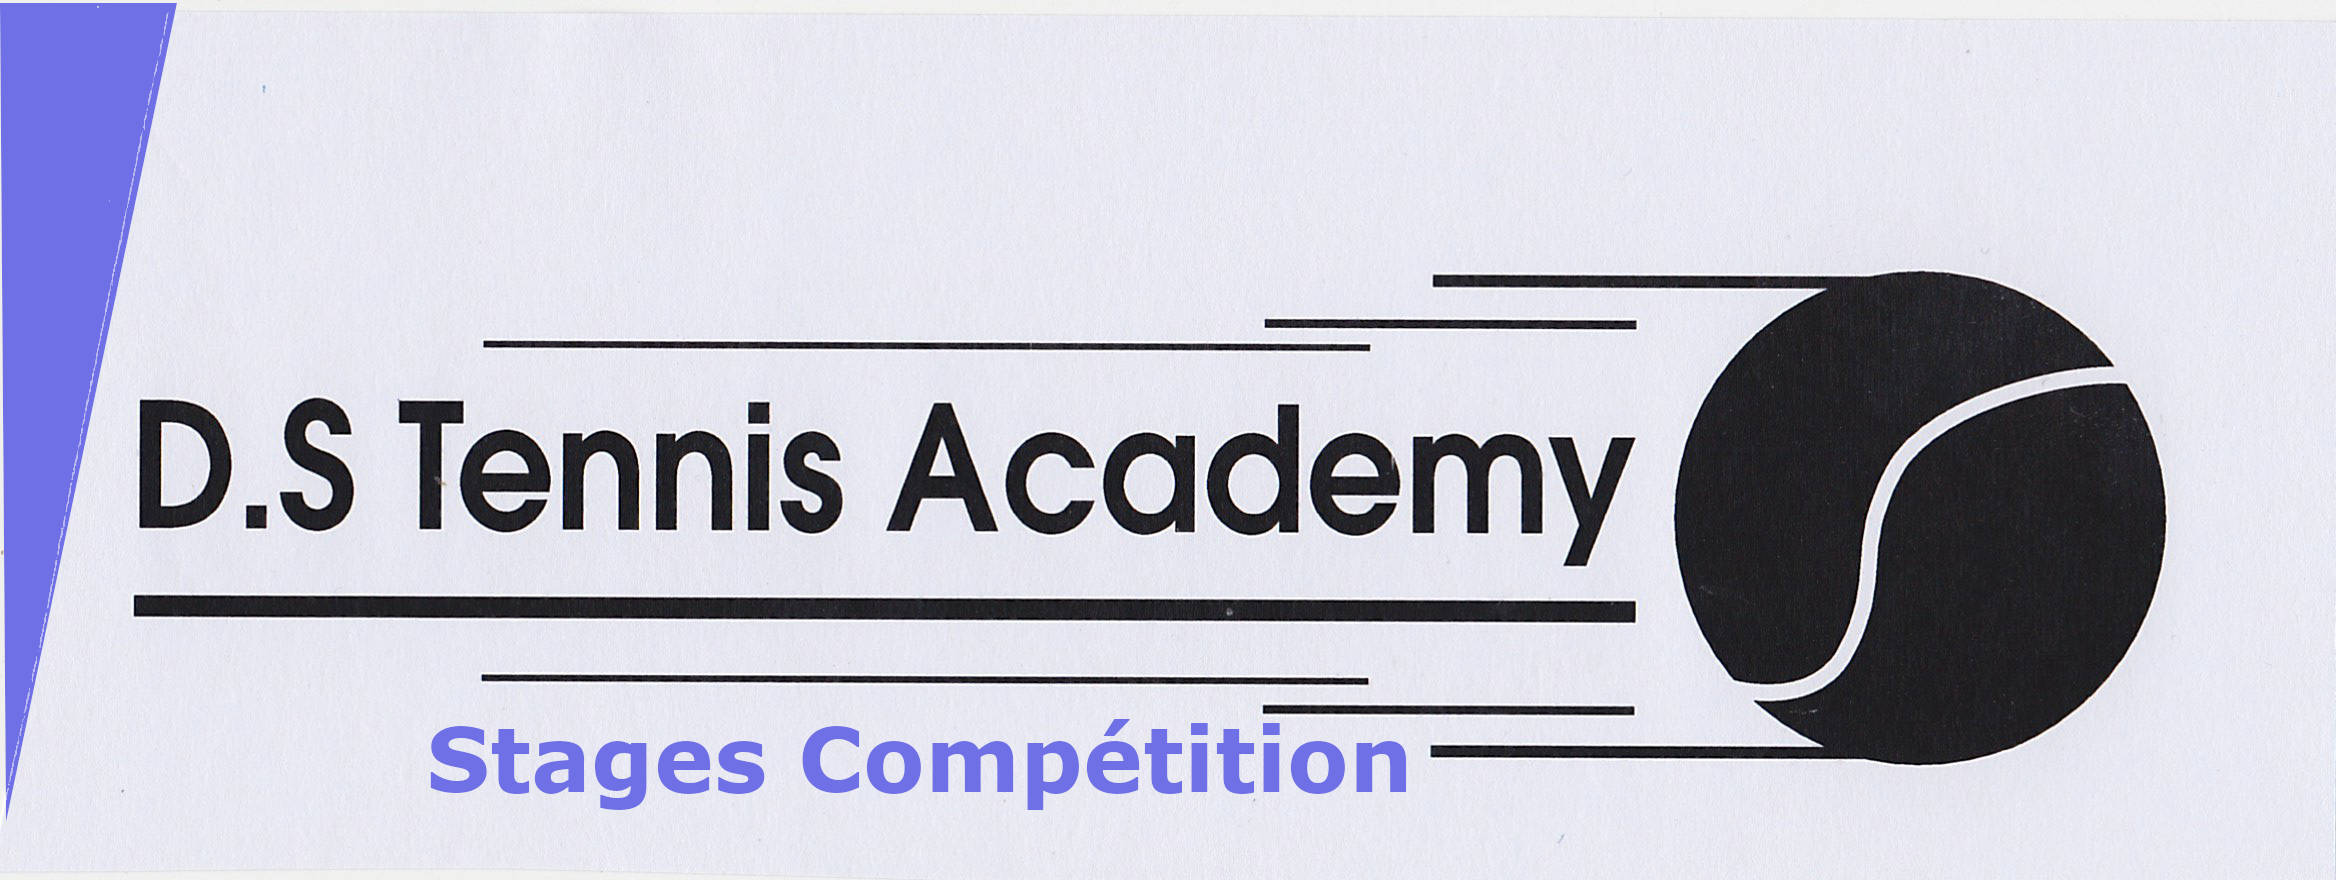 Stages Compétion DS Tennis Academy